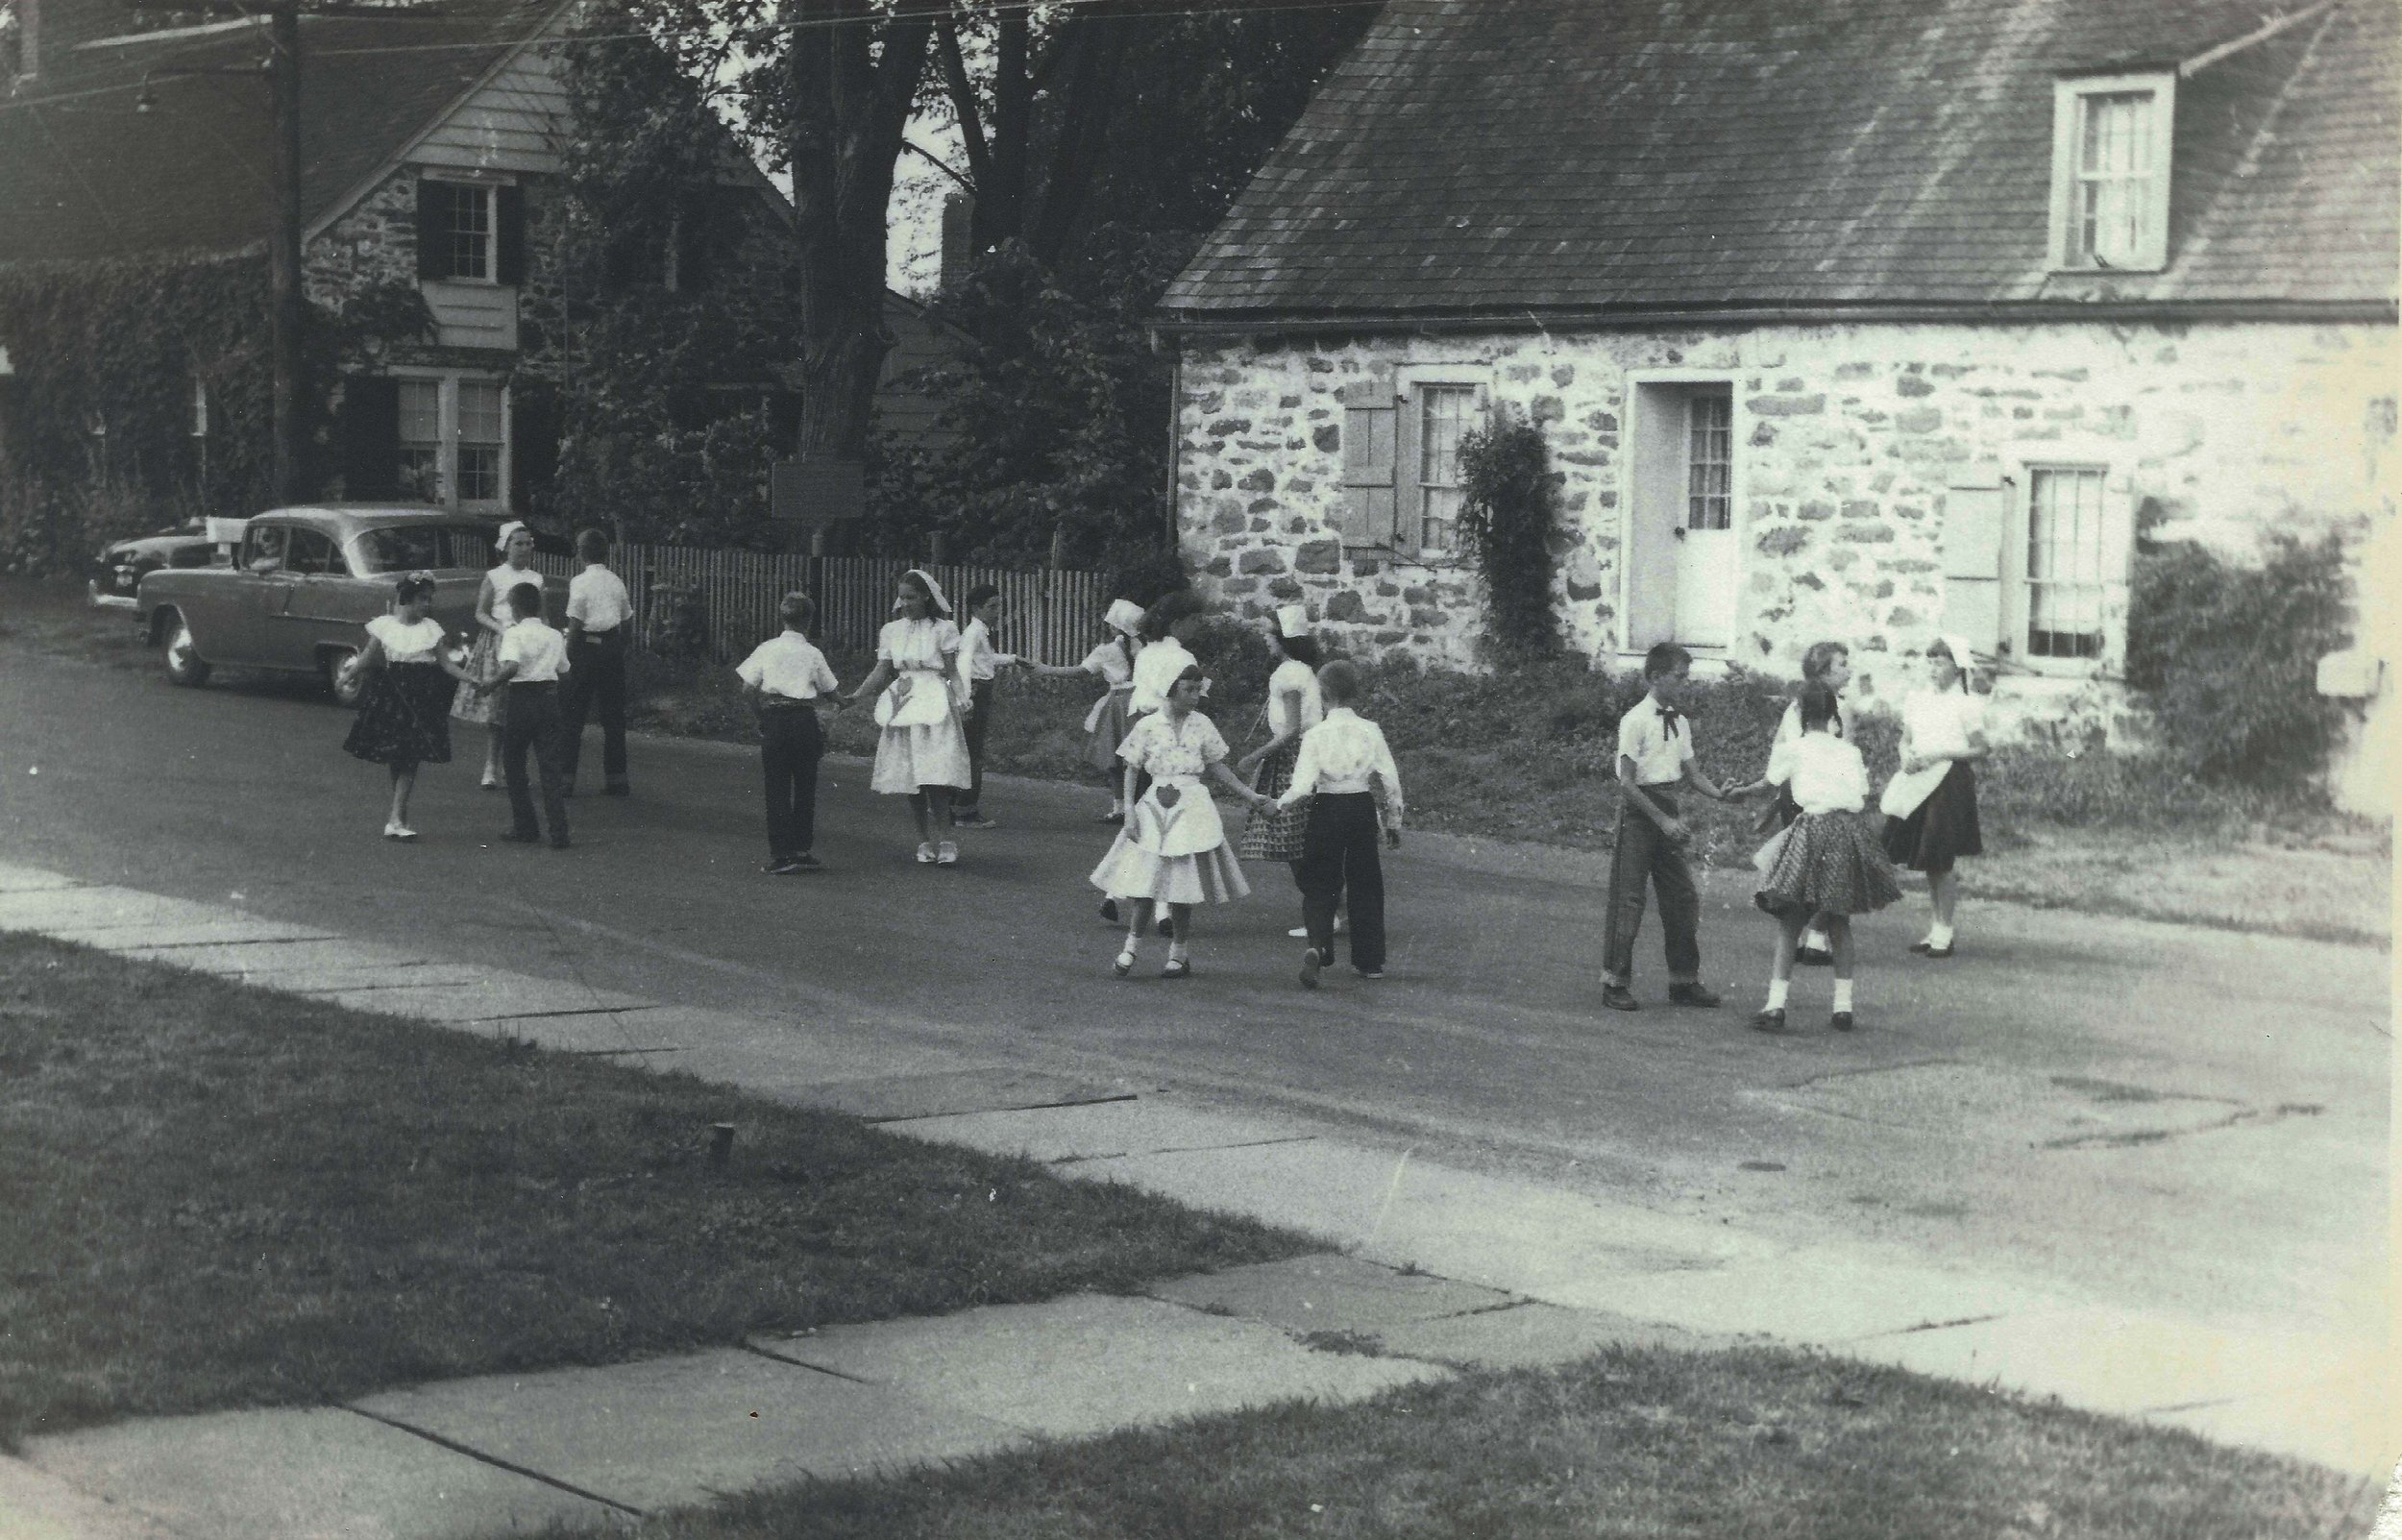 Stone House Day, 1956